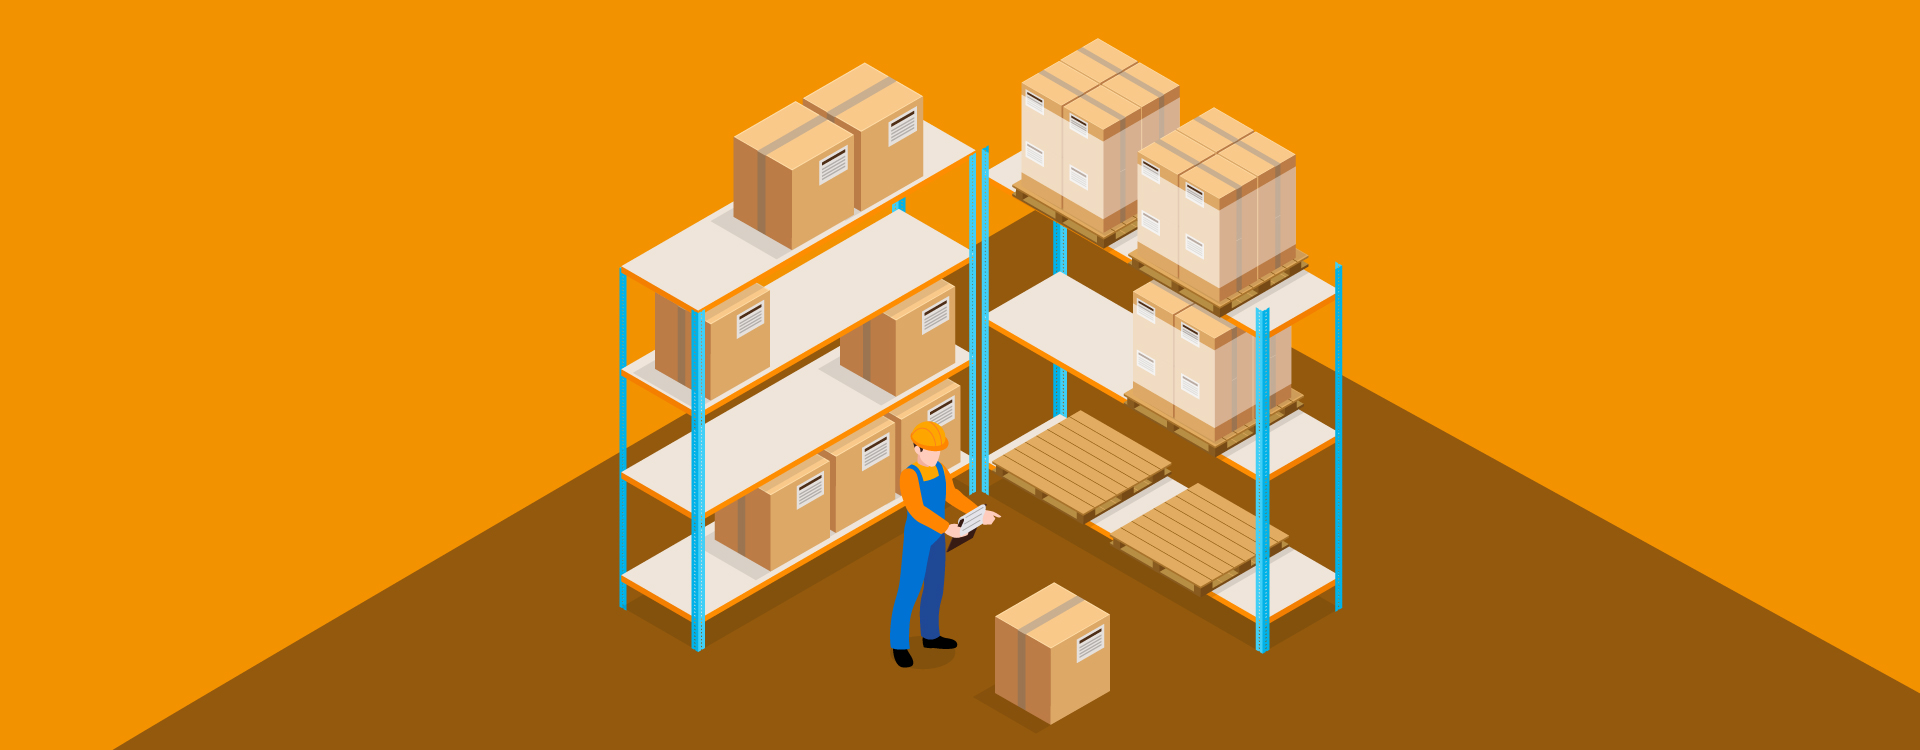 Inventory management of your online store can make or break your business